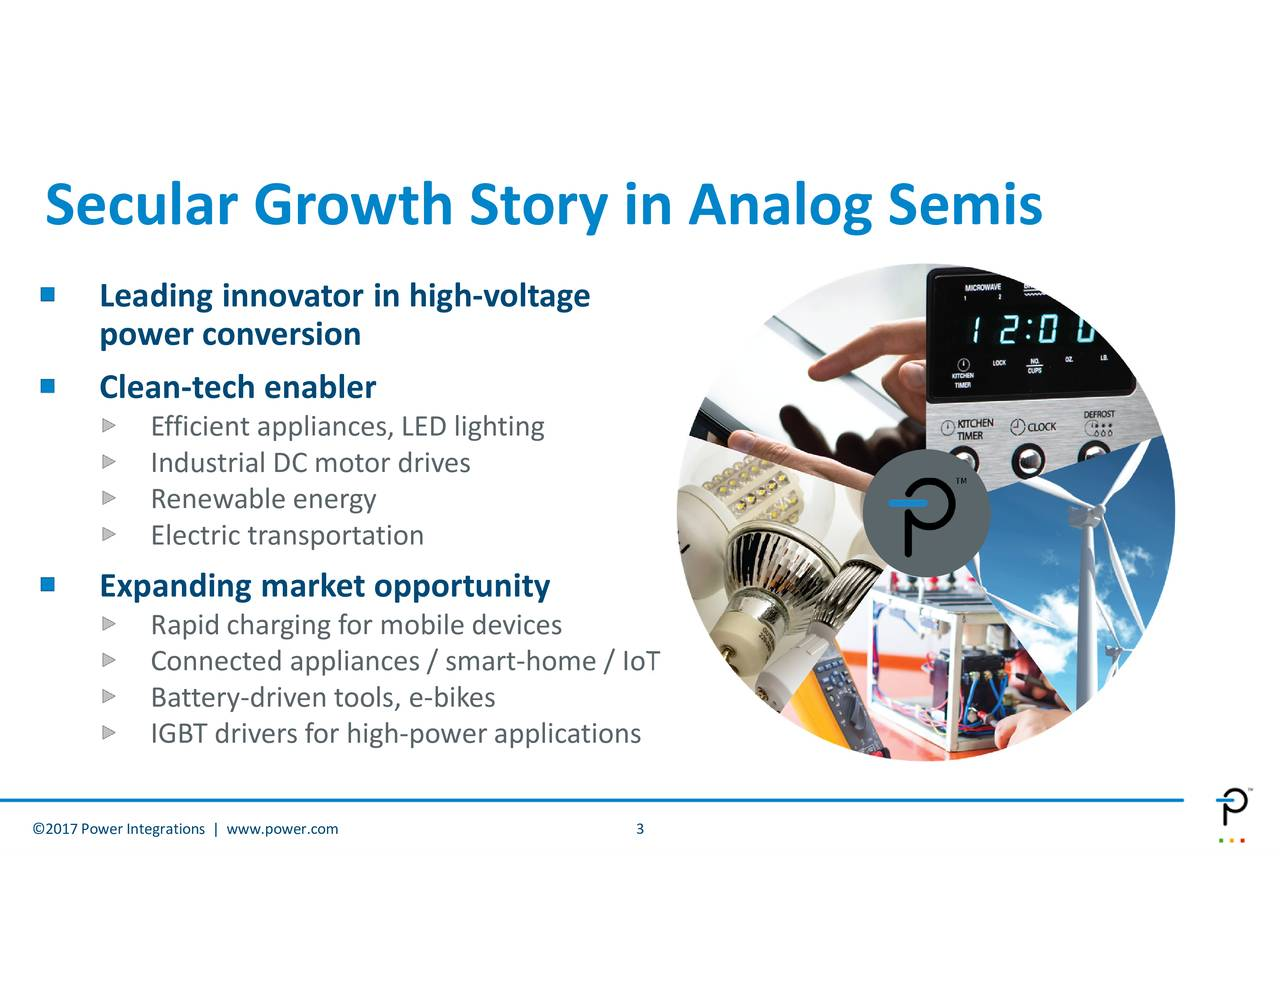 EfcidusareciblmaandpnaierTnapvenstore/ghbprtsermae/loTtions LeapoinglicnonvatosonEablarnvinltmgearket opportunity Secular Growth Story in Analog Semis 2017Power Integrations | www.power.com